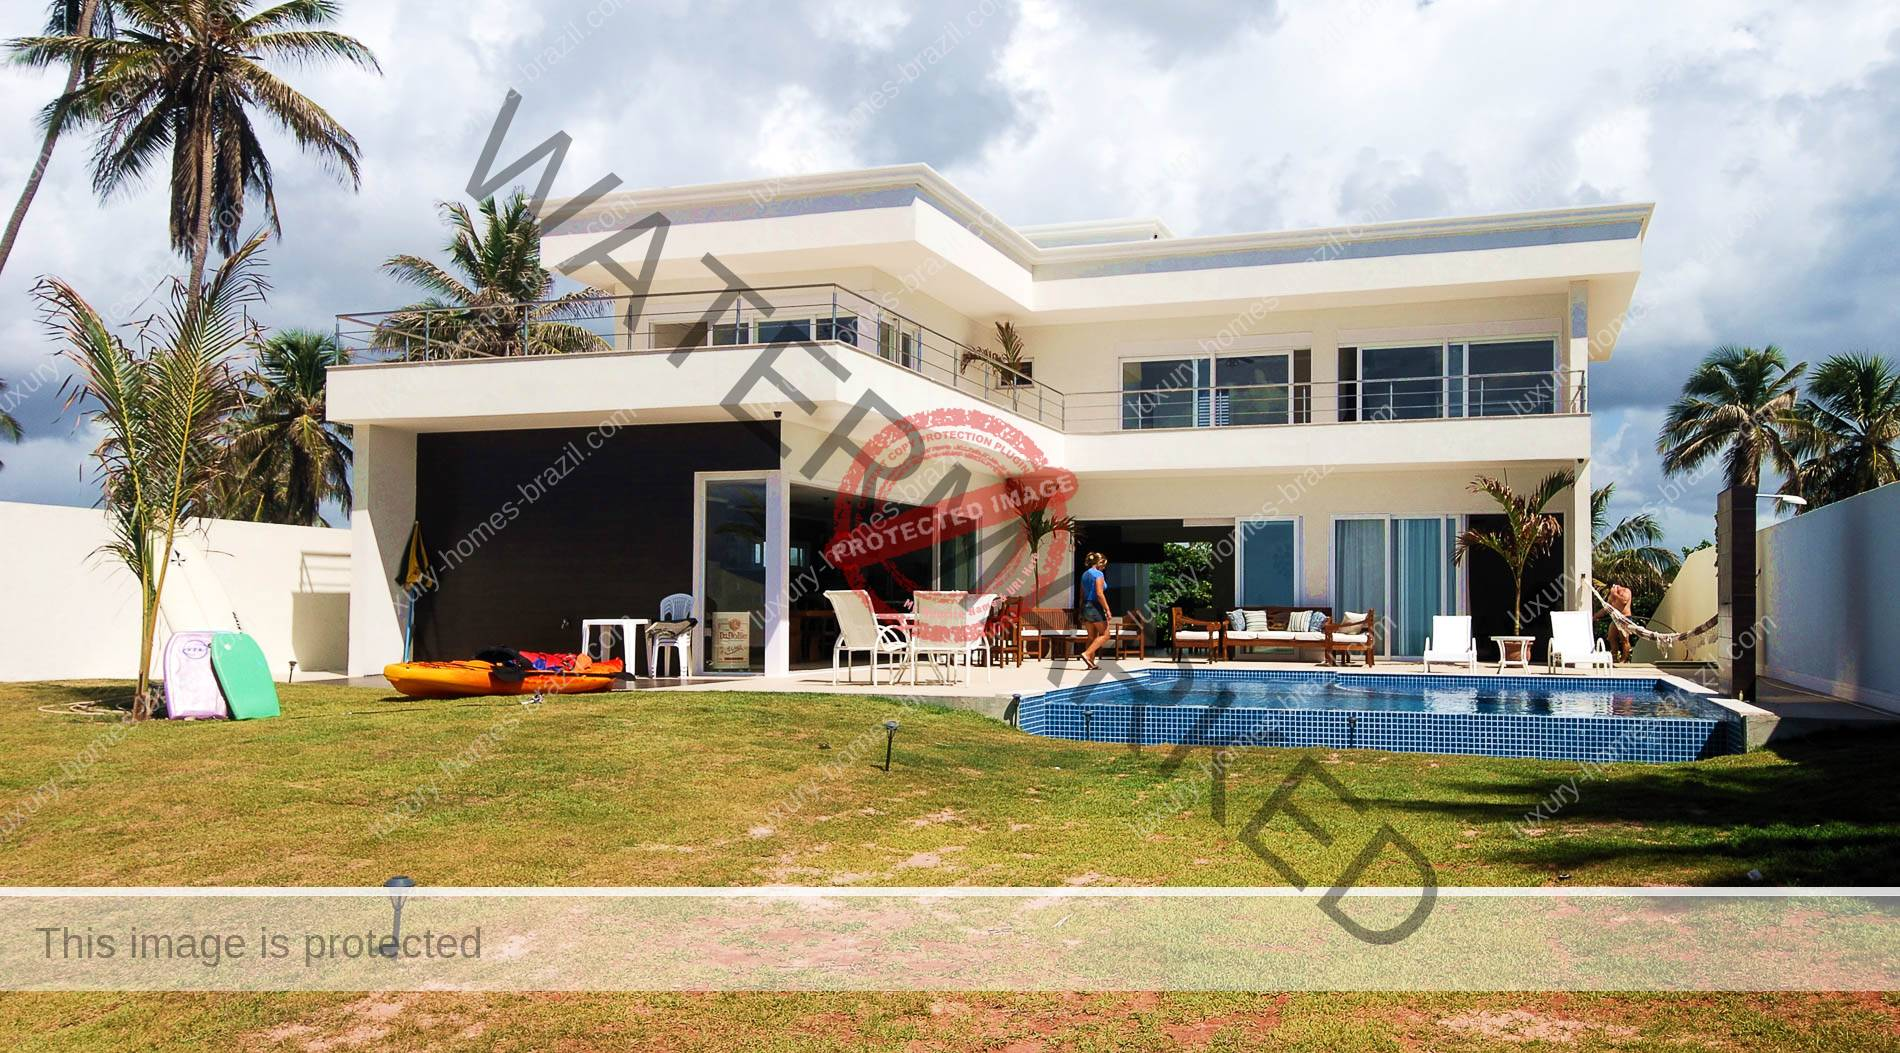 Luxury beachfront home for sale barra de jacu pe luxury for Luxury beachfront property for sale